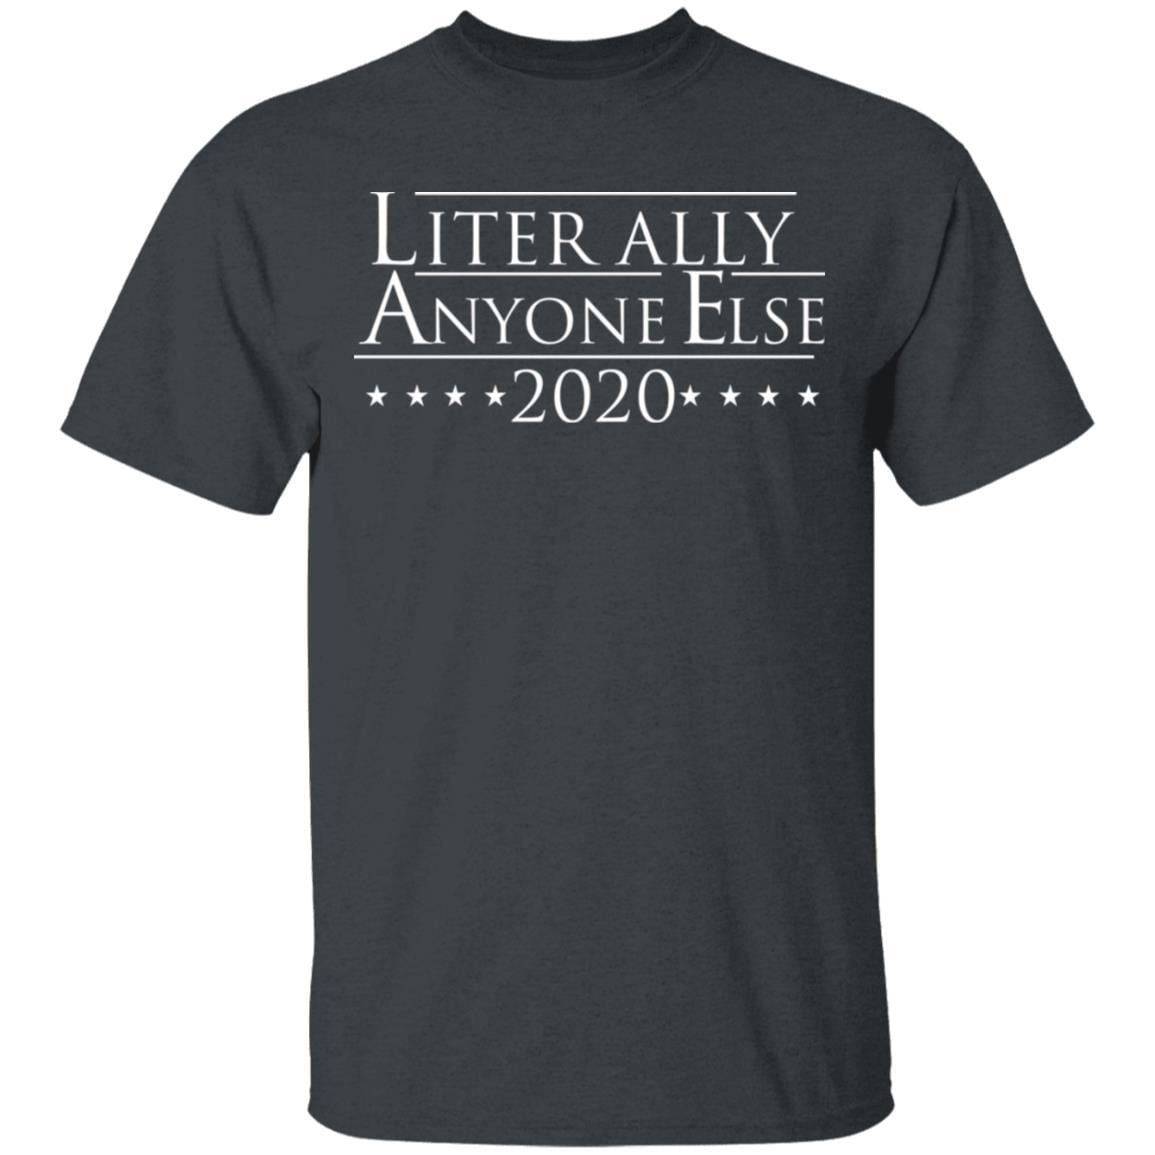 Literally Anyone Else 2020 T-Shirts, Hoodies 1049-9957-88765989-48192 - Tee Ript